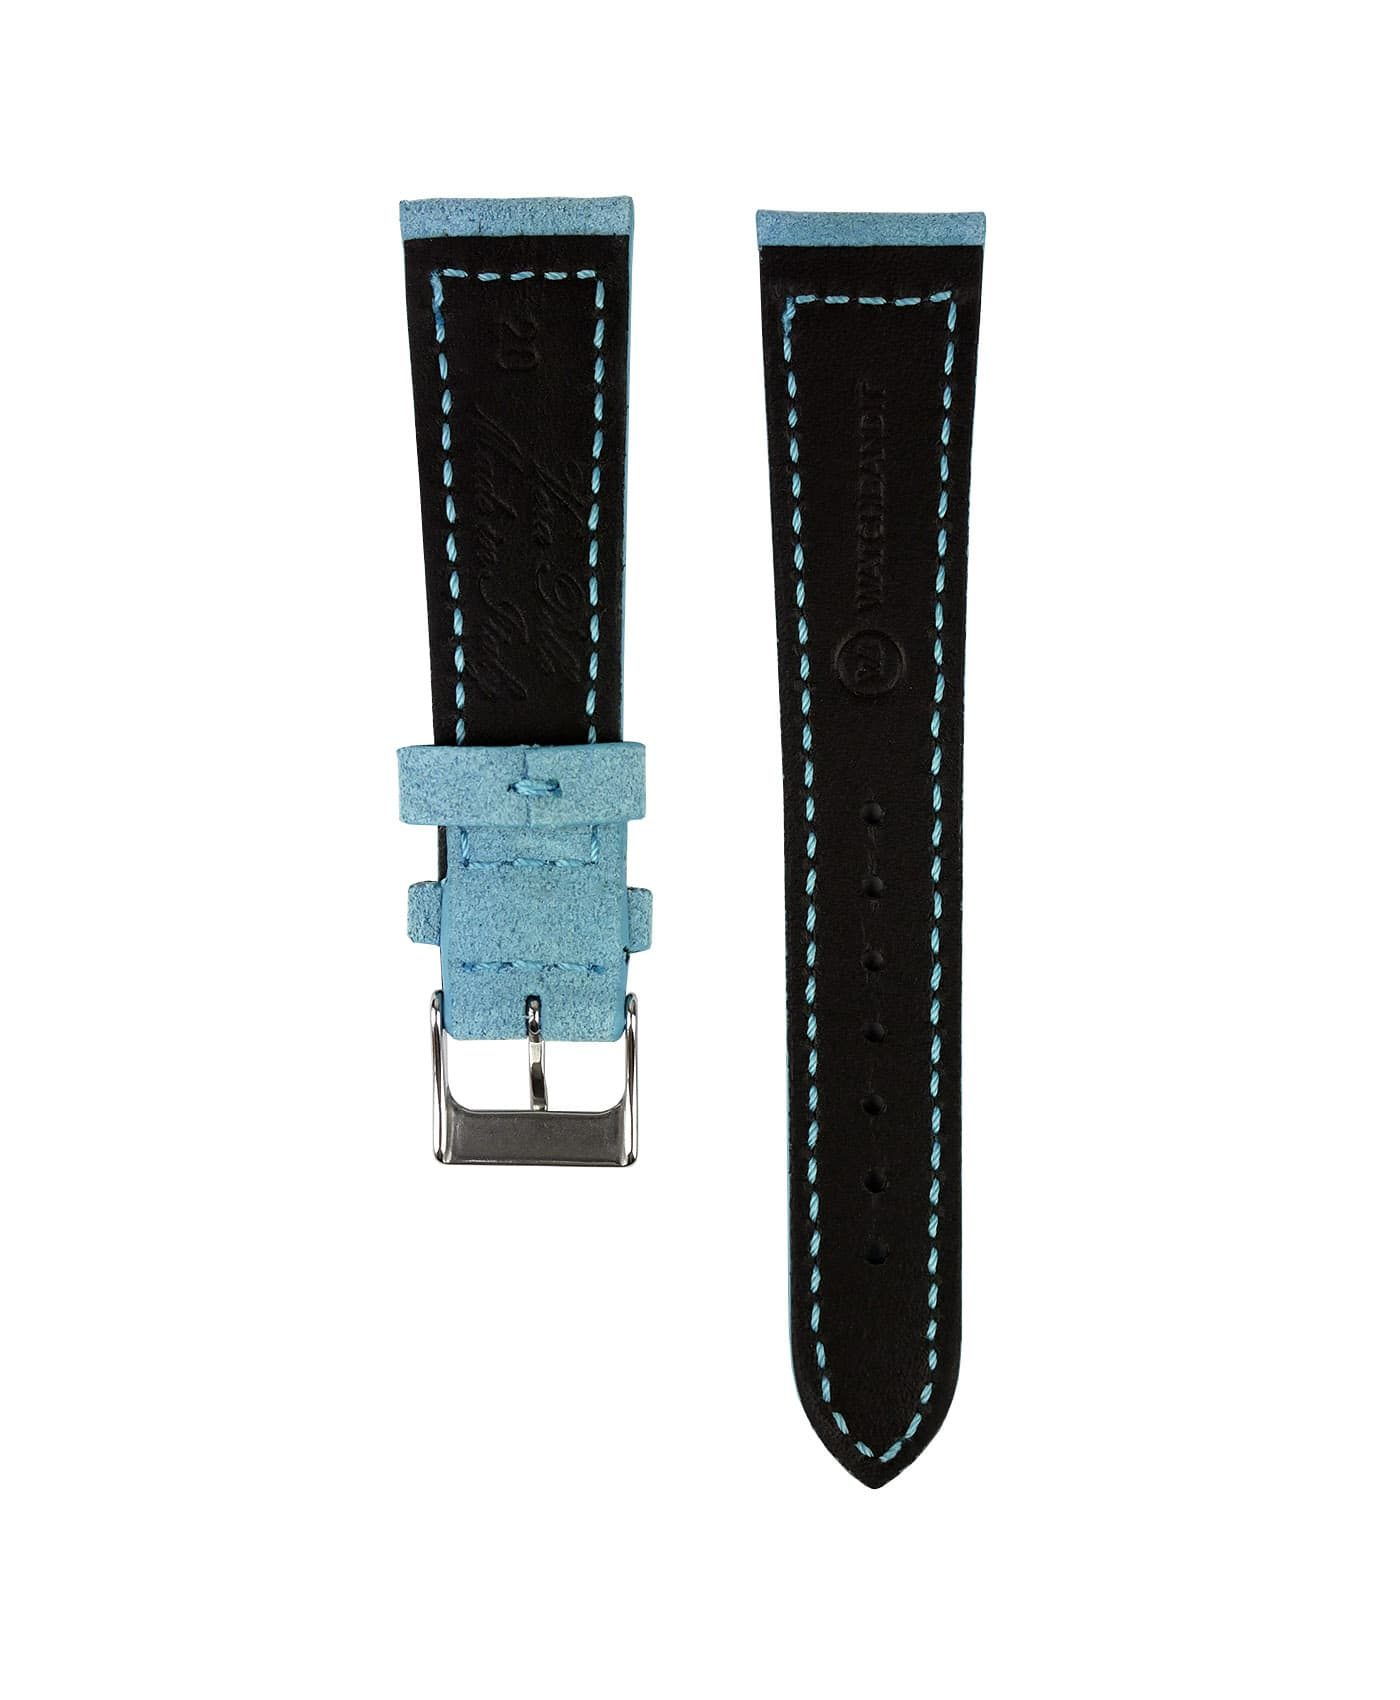 Suede leather strap with side seam_light blue_back